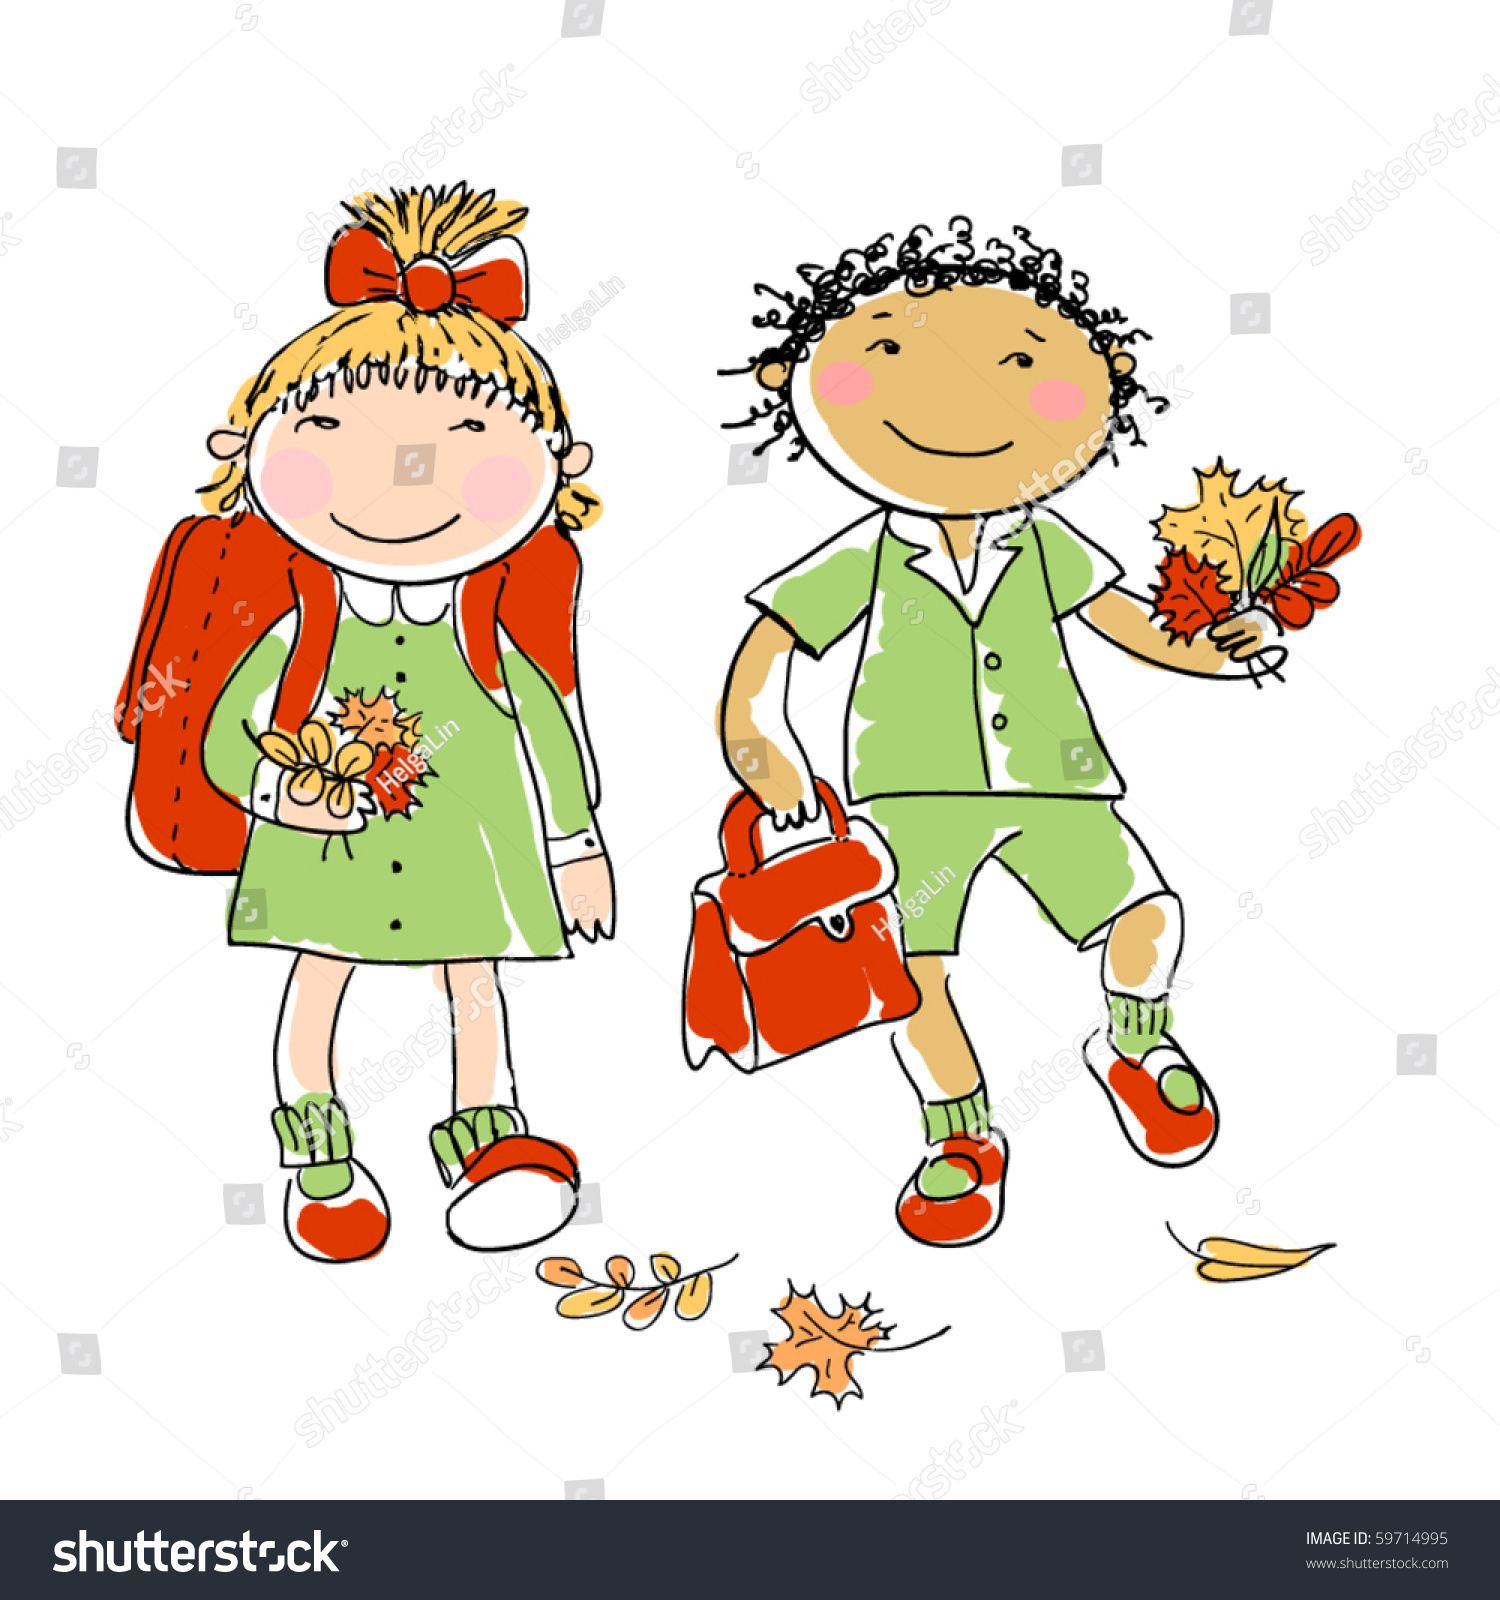 Image result for autumn in school